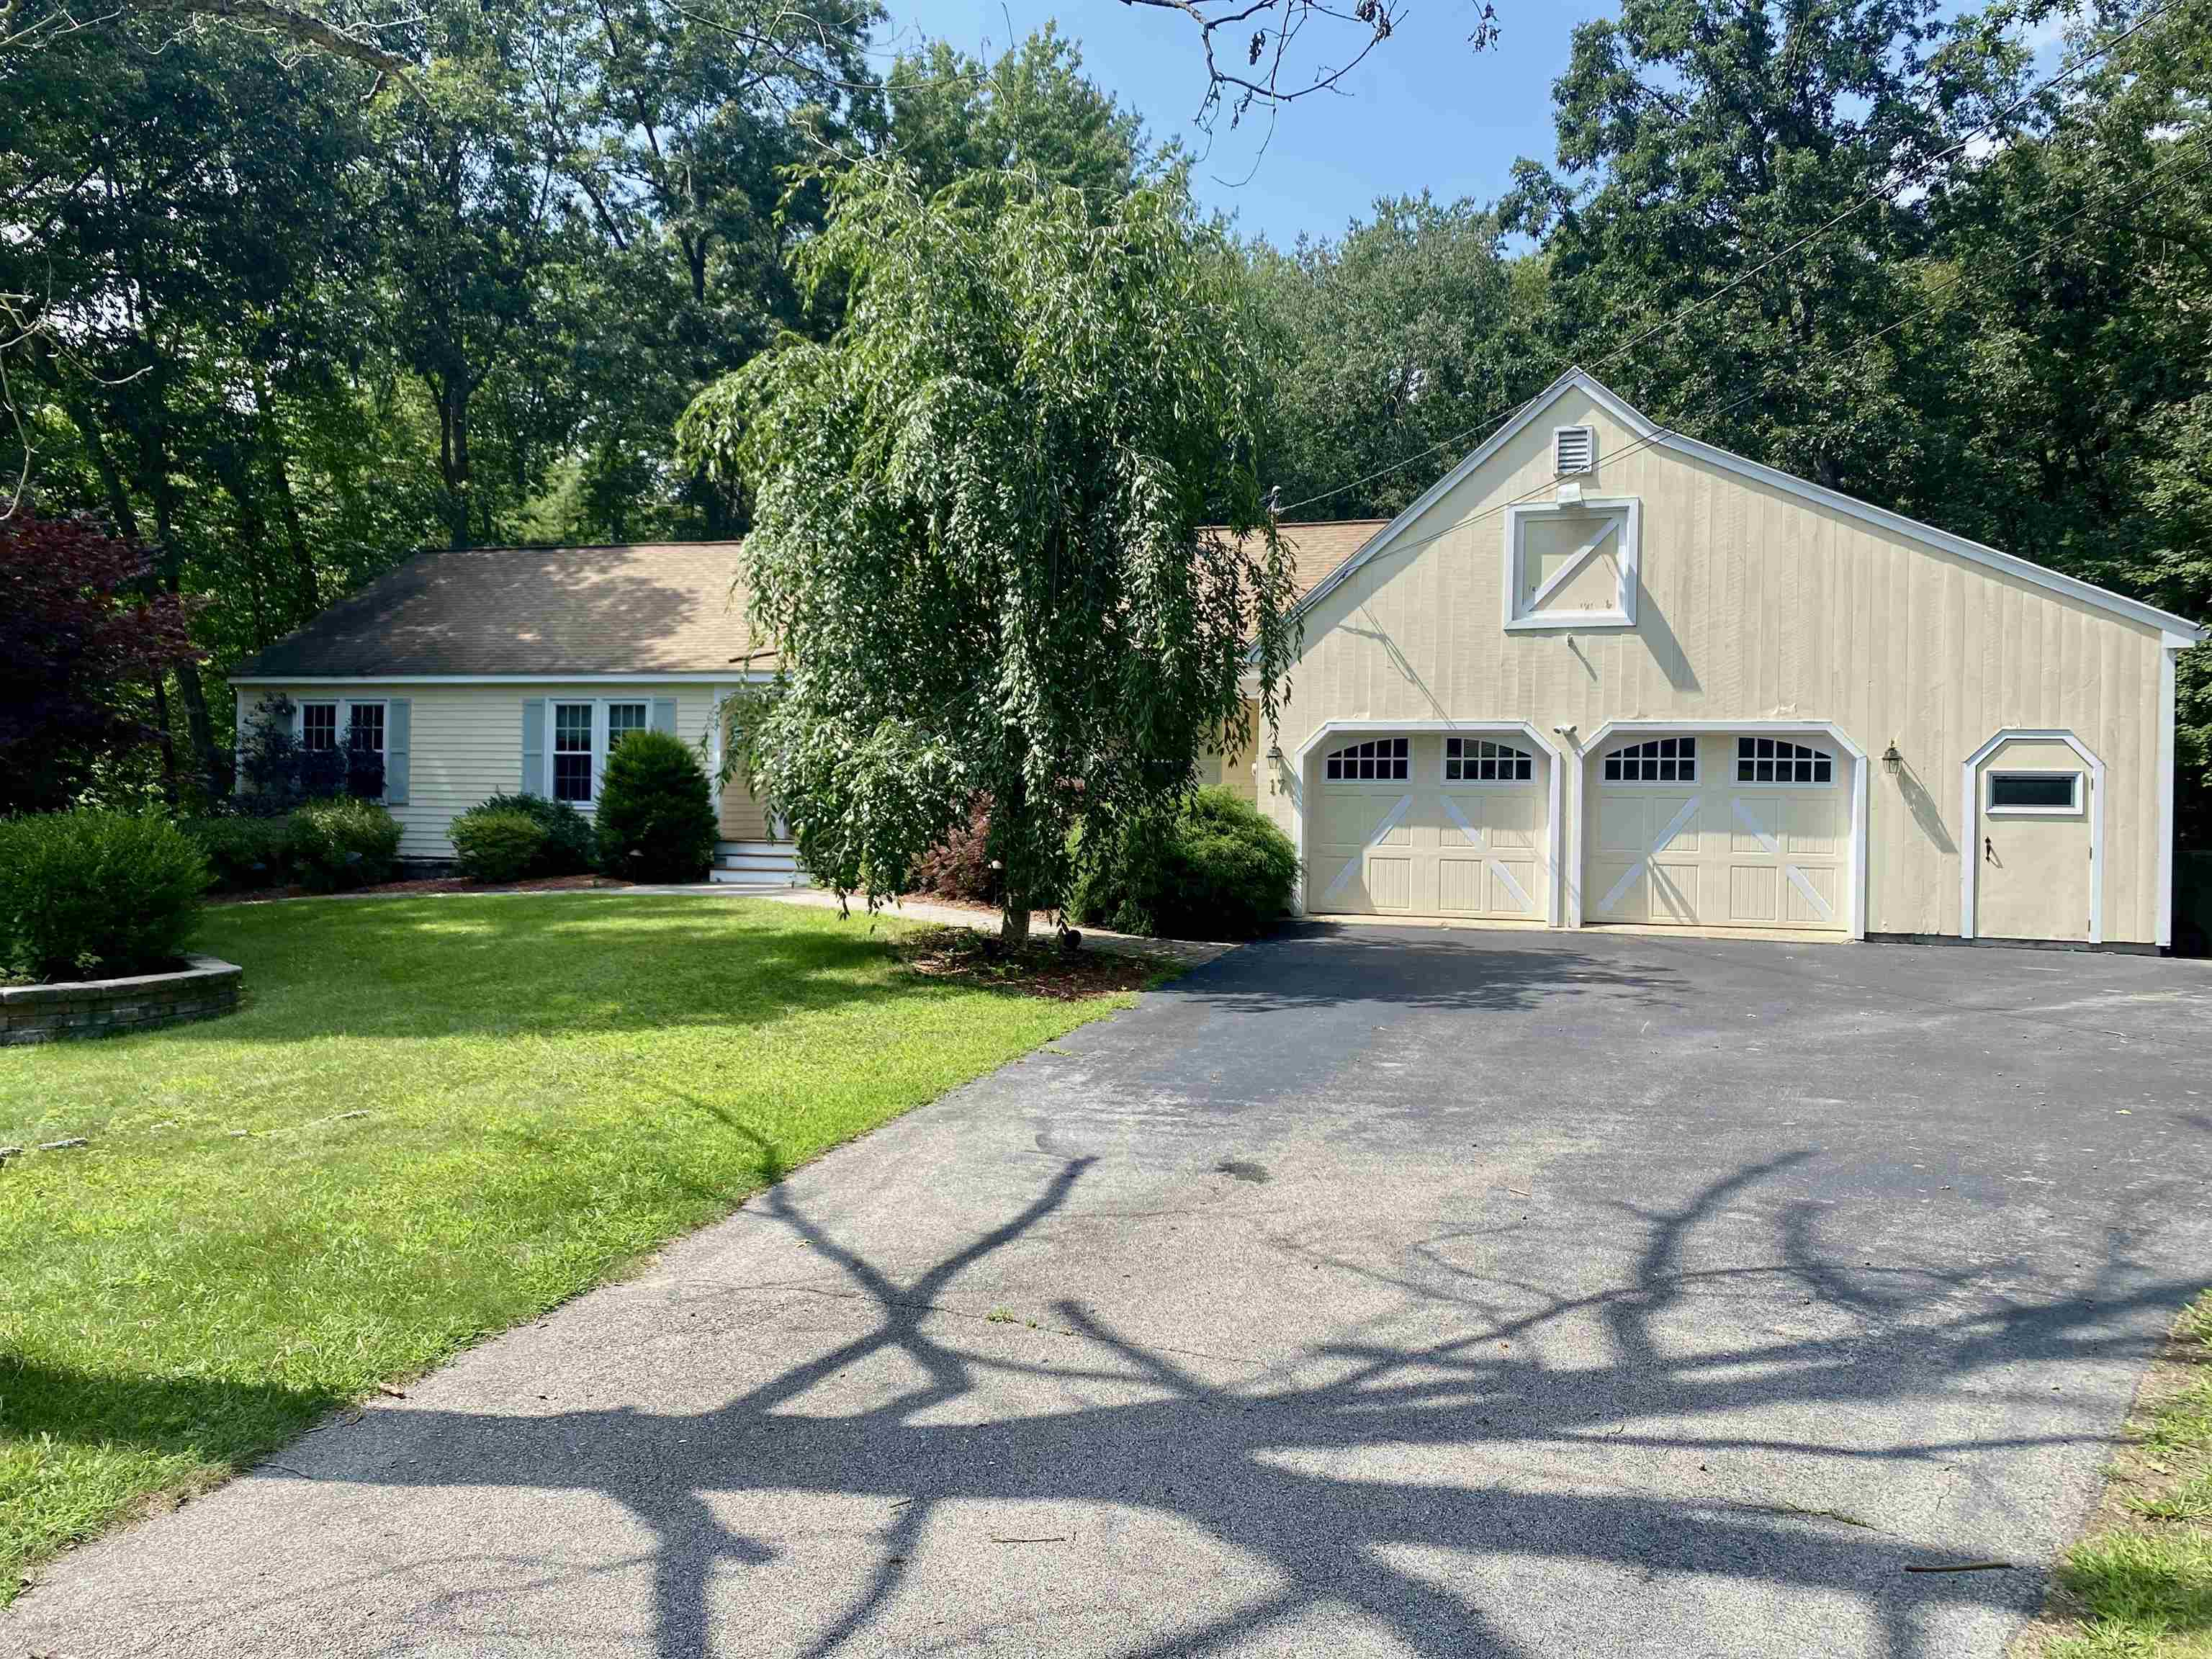 Photo of 17 Meadowbrook Lane Litchfield NH 03052